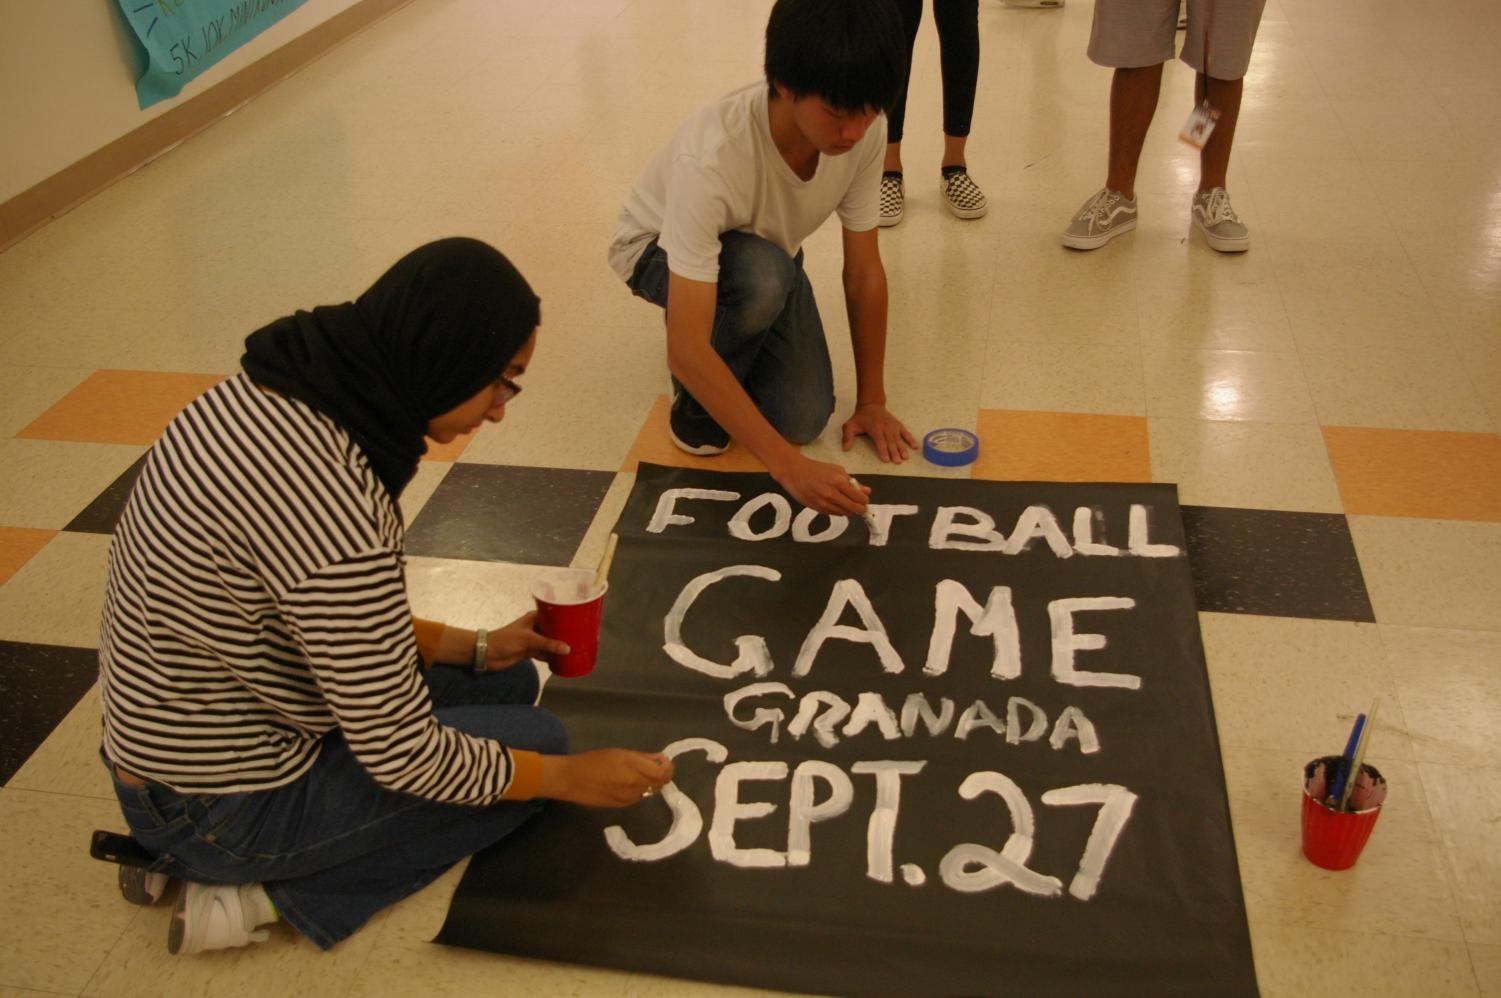 From left to right, freshman leadership students Alizay Iqbal and Christopher Chiang paint a poster to advertise the football game that took place on Sept. 27.